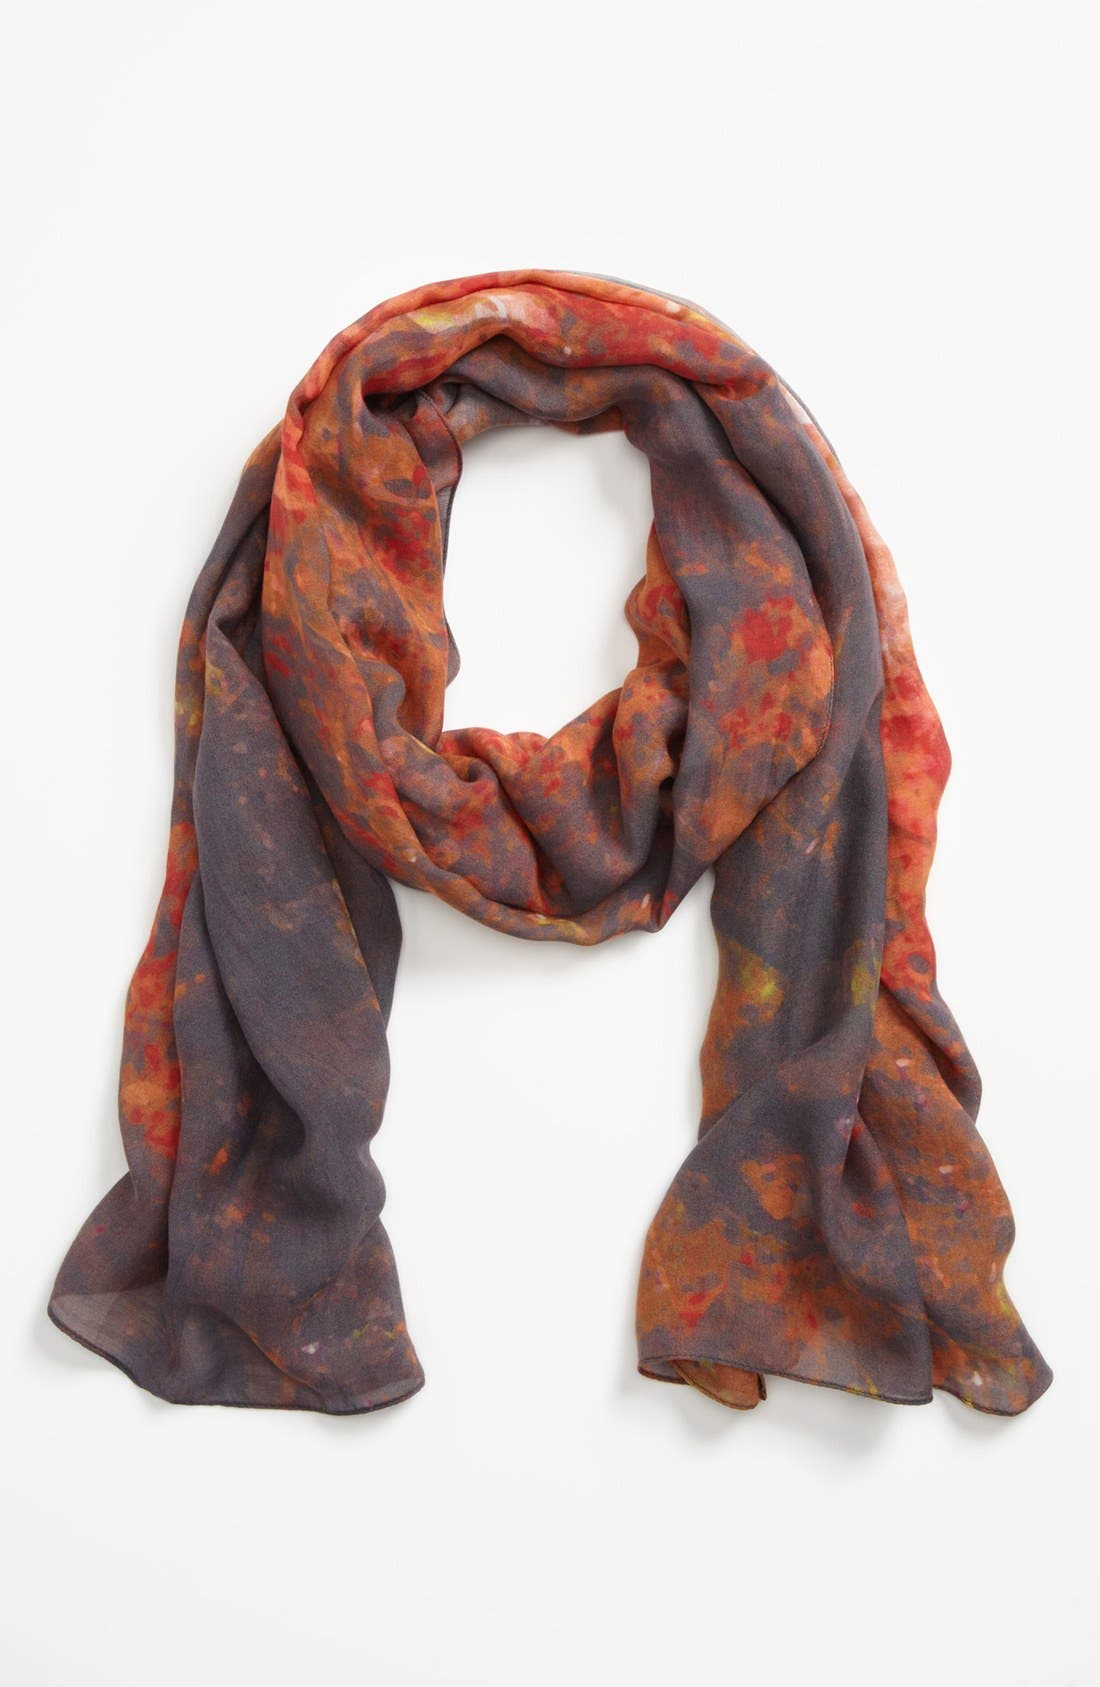 Alternate Image 1 Selected - Front Row Society 'Wind' Scarf